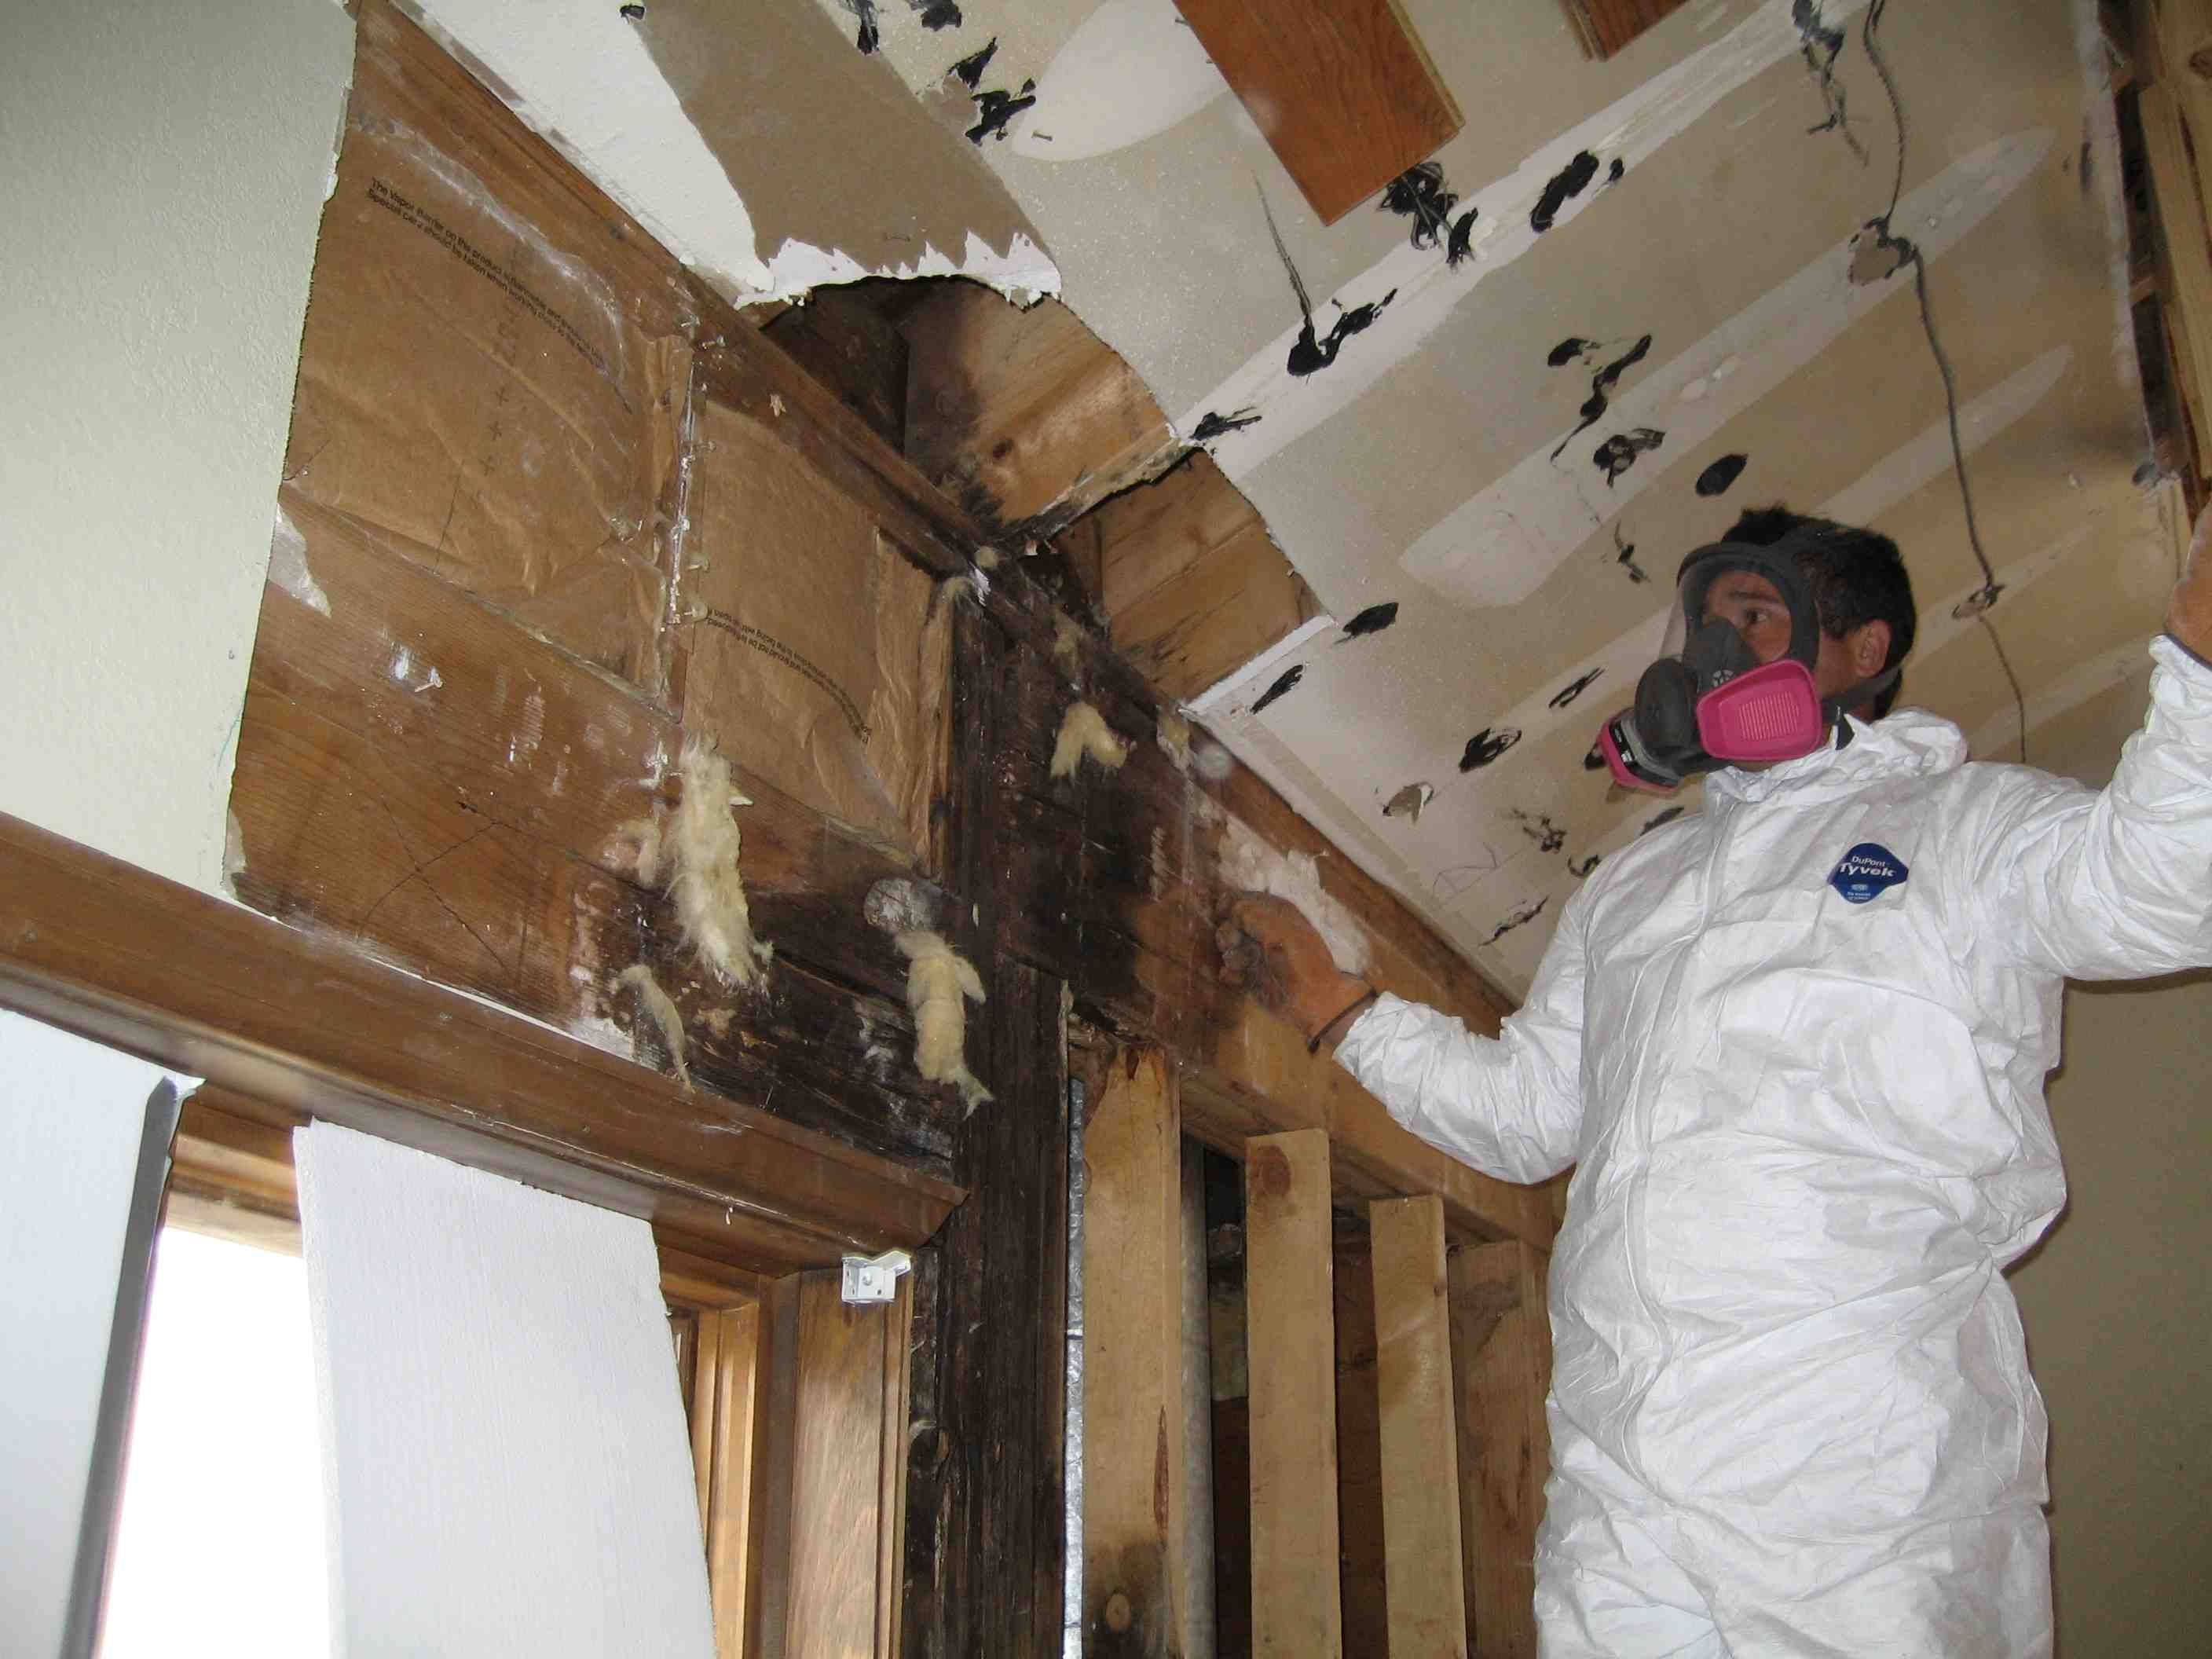 Black mold inspection cost - As Part Of The Typical Procedure Mold Remediation Professionals Shows Up At Your House In White Suits And Wearing Goggles Boots And Respirators